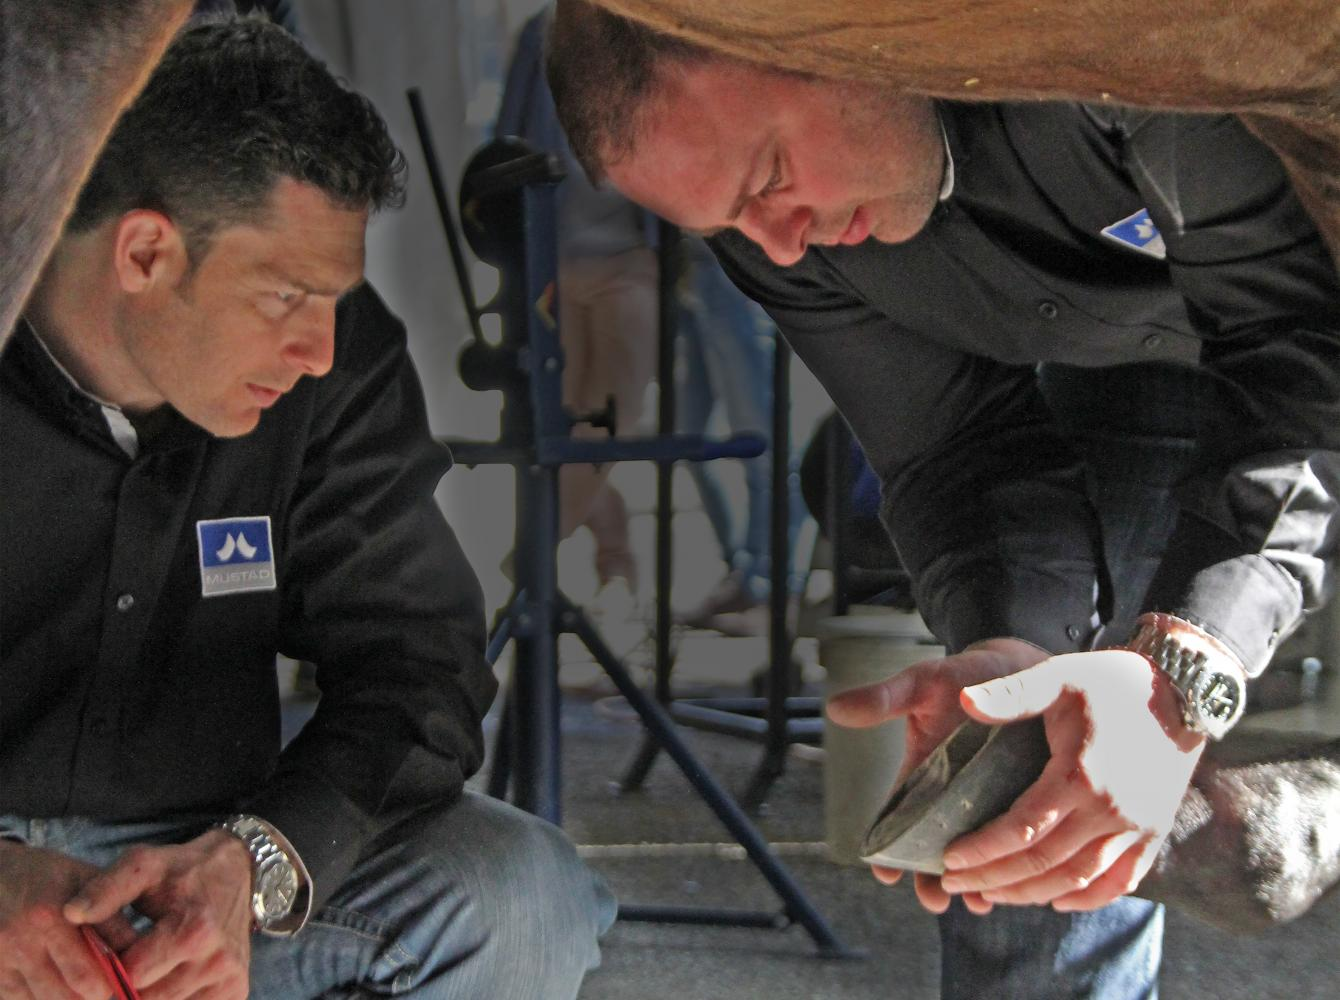 2 farriers discussing a shoeing solution